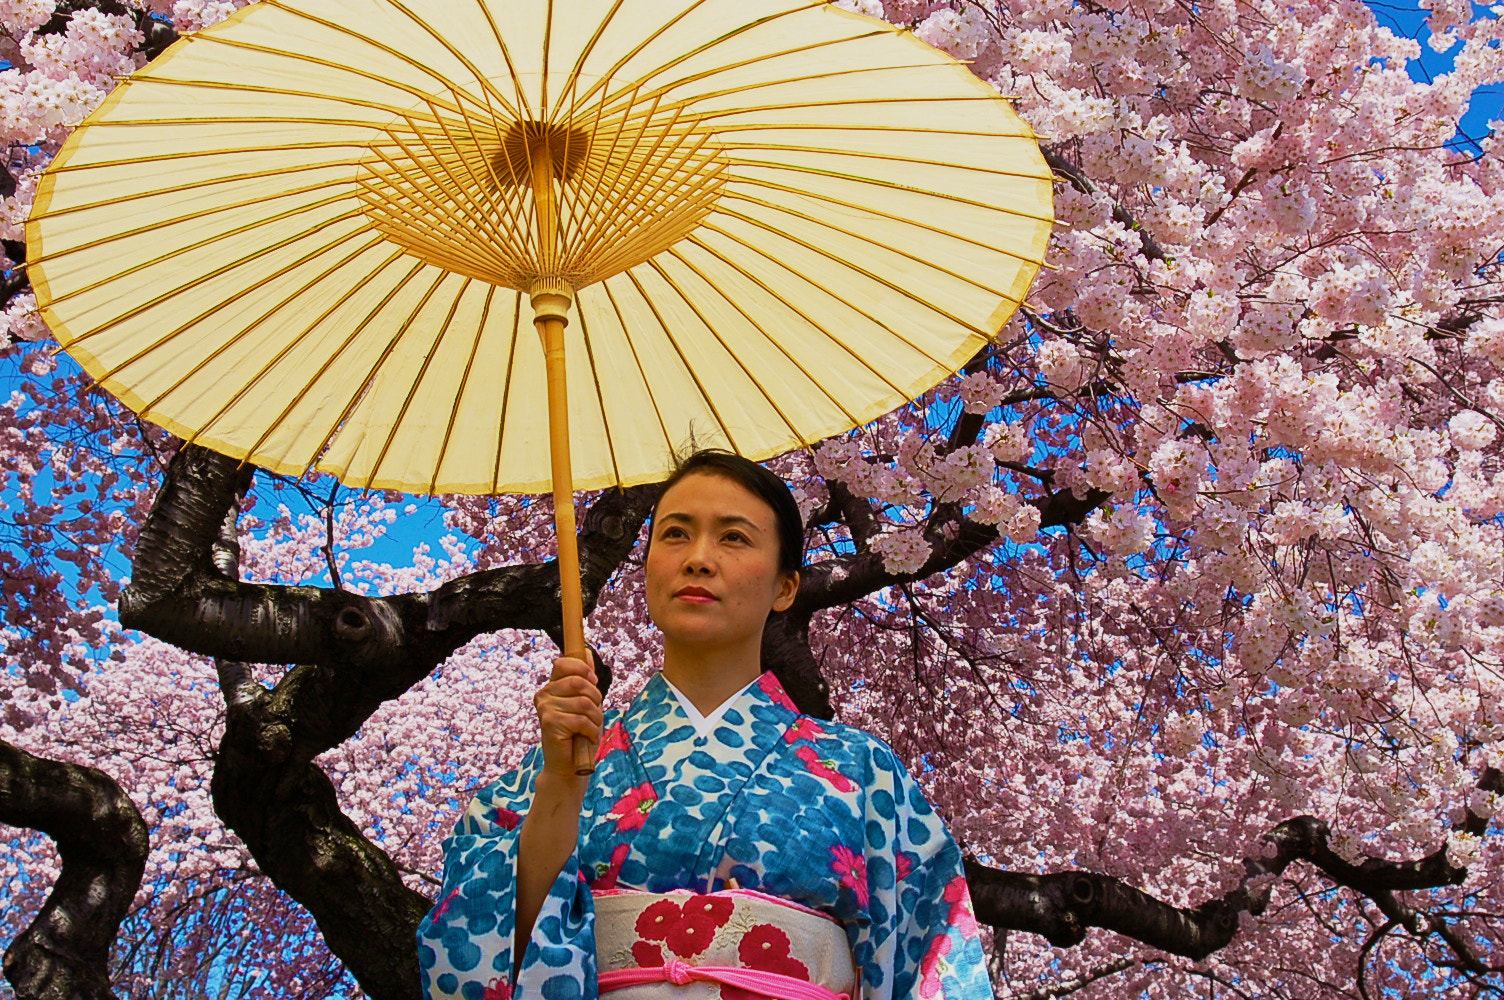 Photograph Kimono Elegance Beneath Cherry Blossoms by Chase Guttman on 500px